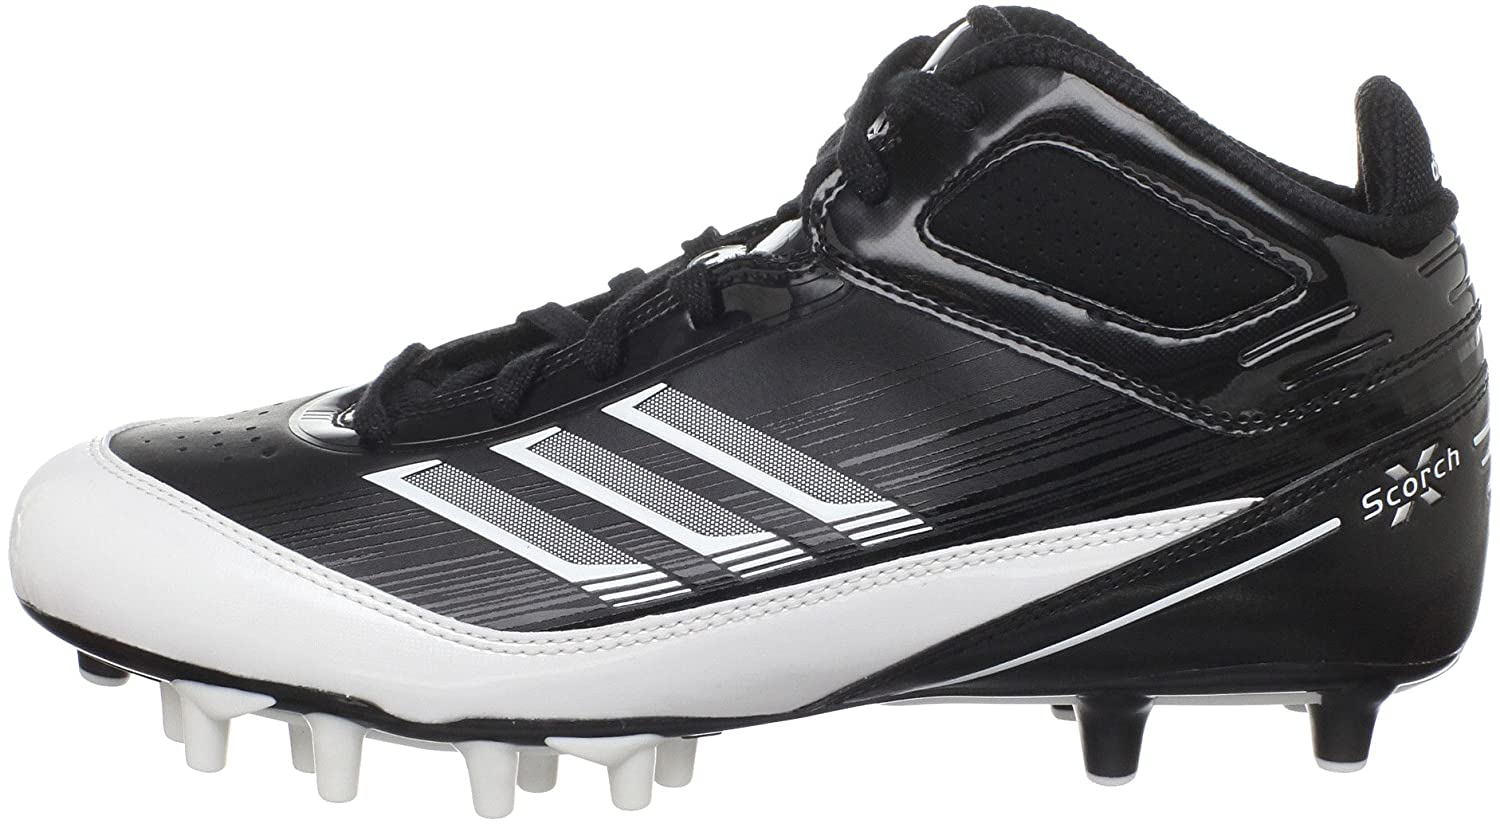 Amazon.com | adidas Men\u0027s Scorch X SuperFly Mid Football Cleat,  Black/White/Metallic Silver, 9 M US | Football